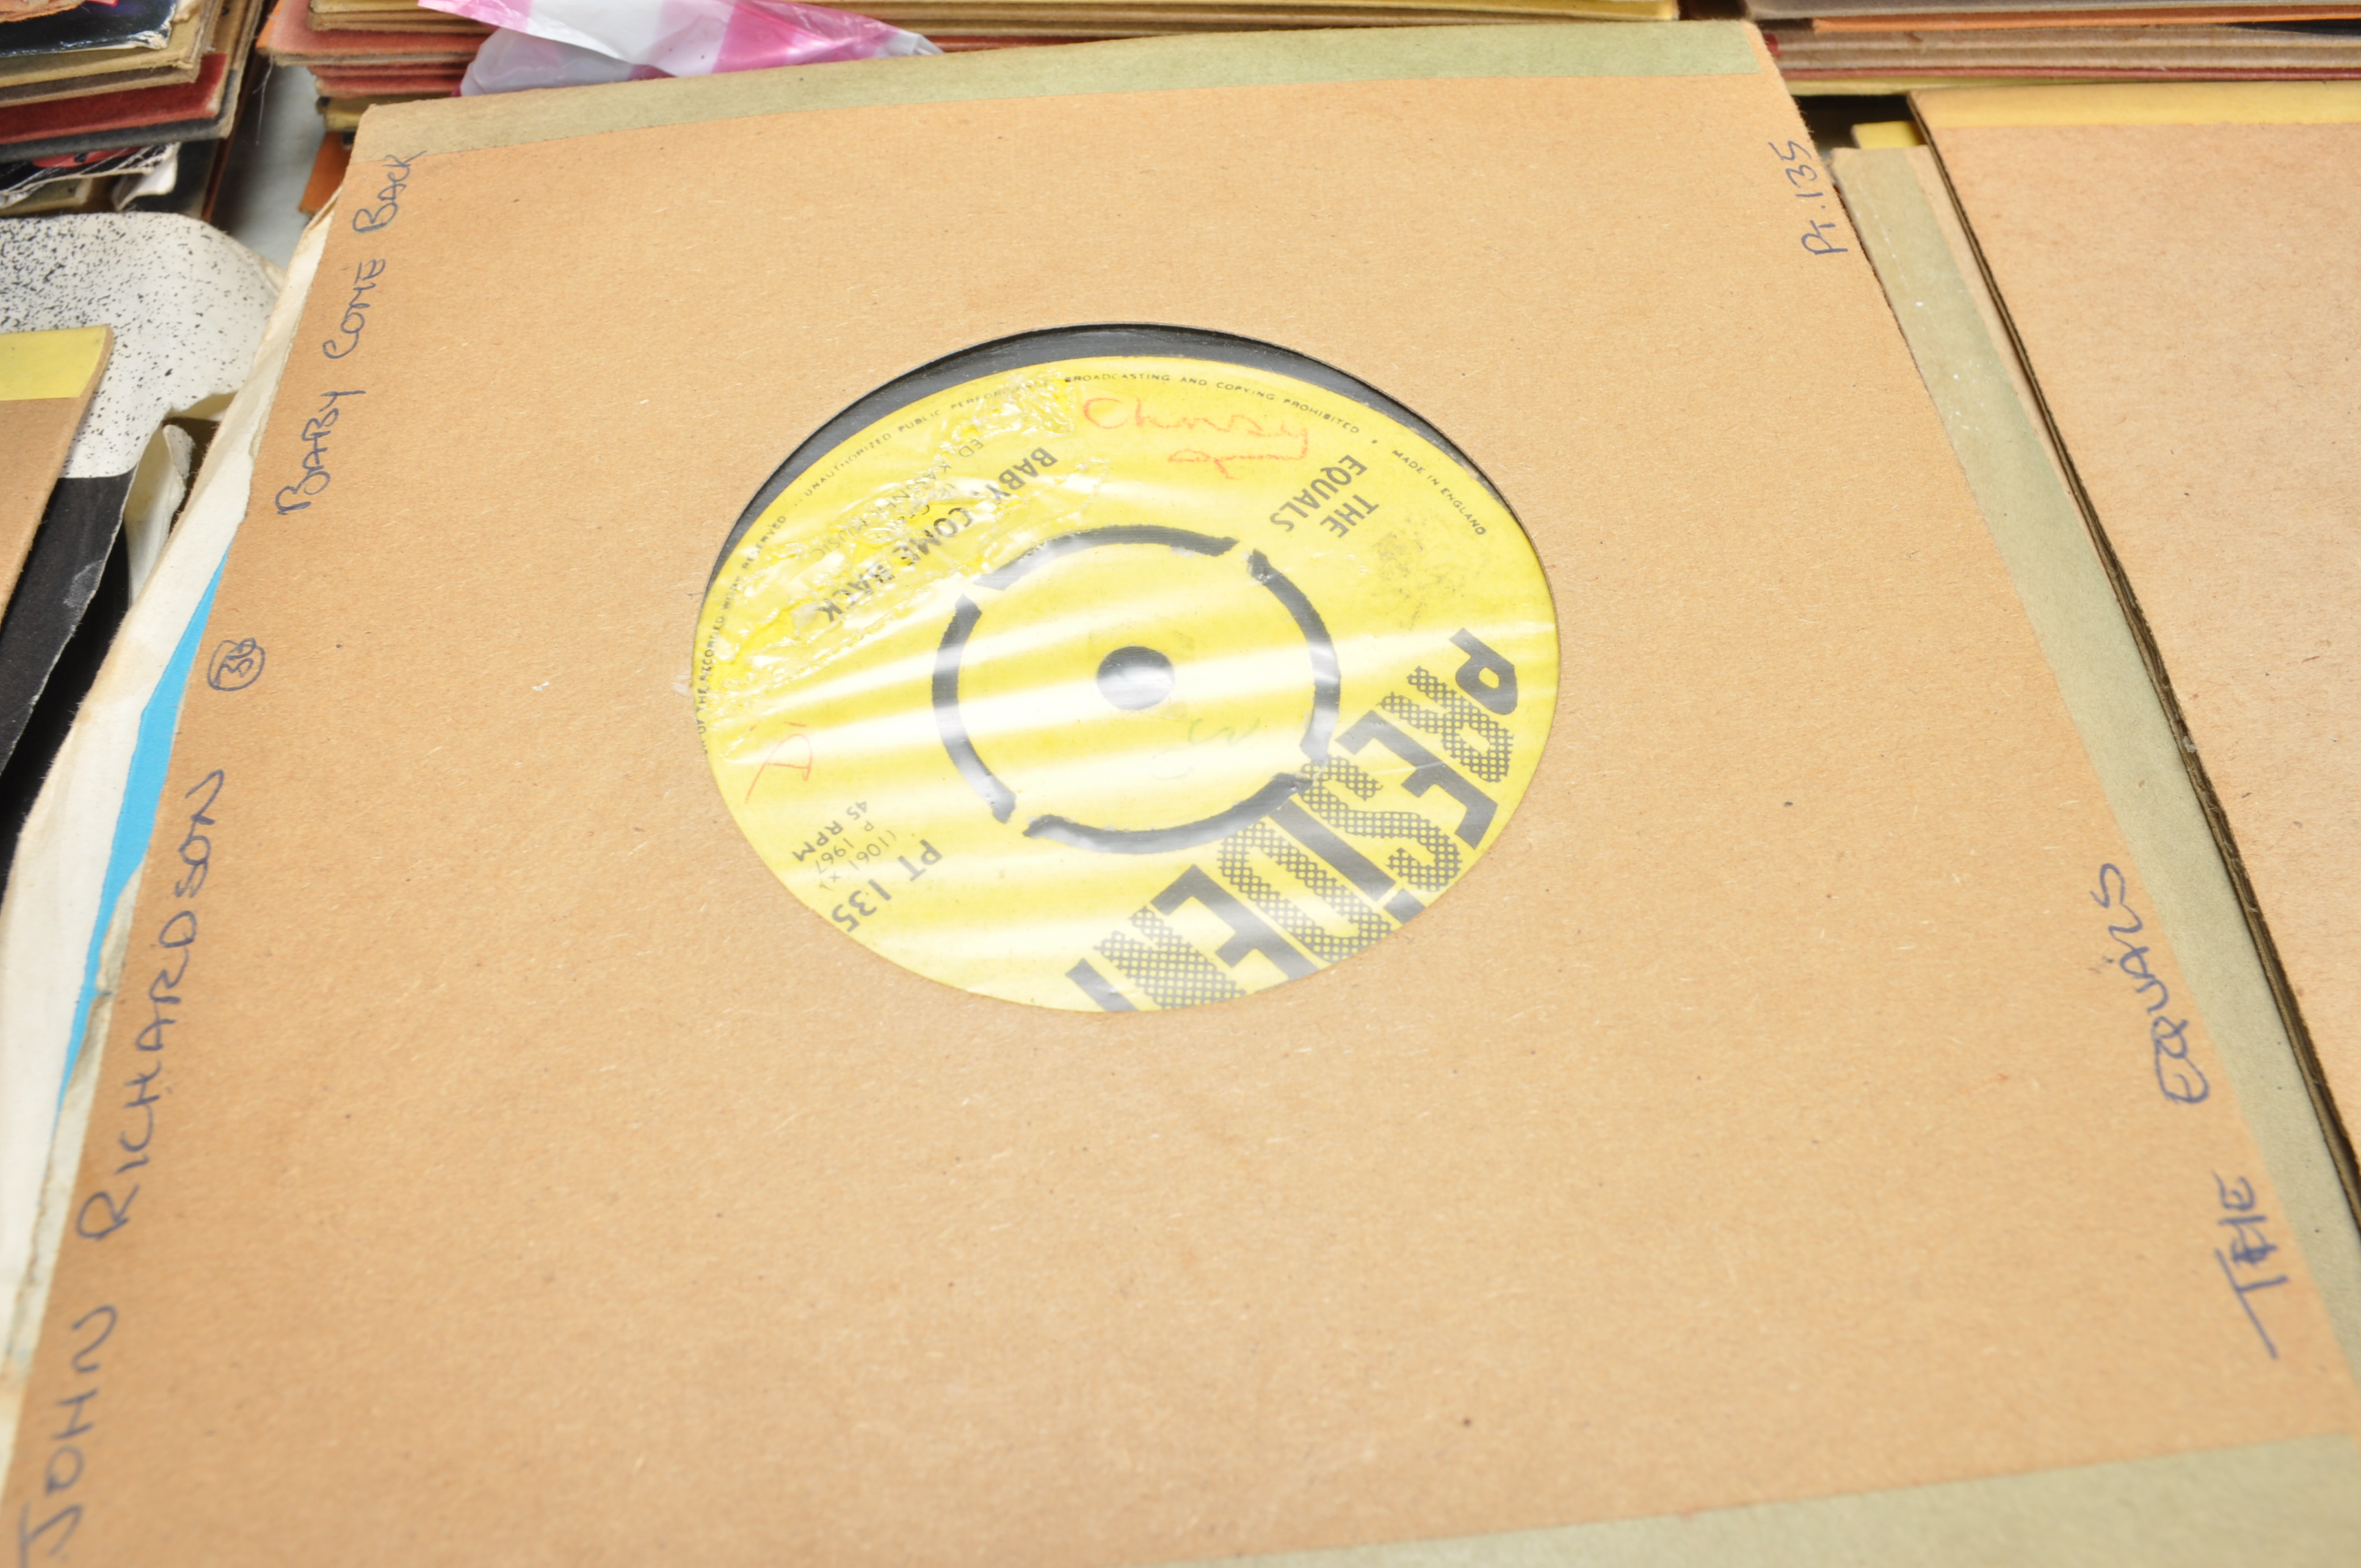 """LARGE COLLECTION OF VINTAGE VINYL 45RPM 7"""" SINGLES - Image 8 of 9"""